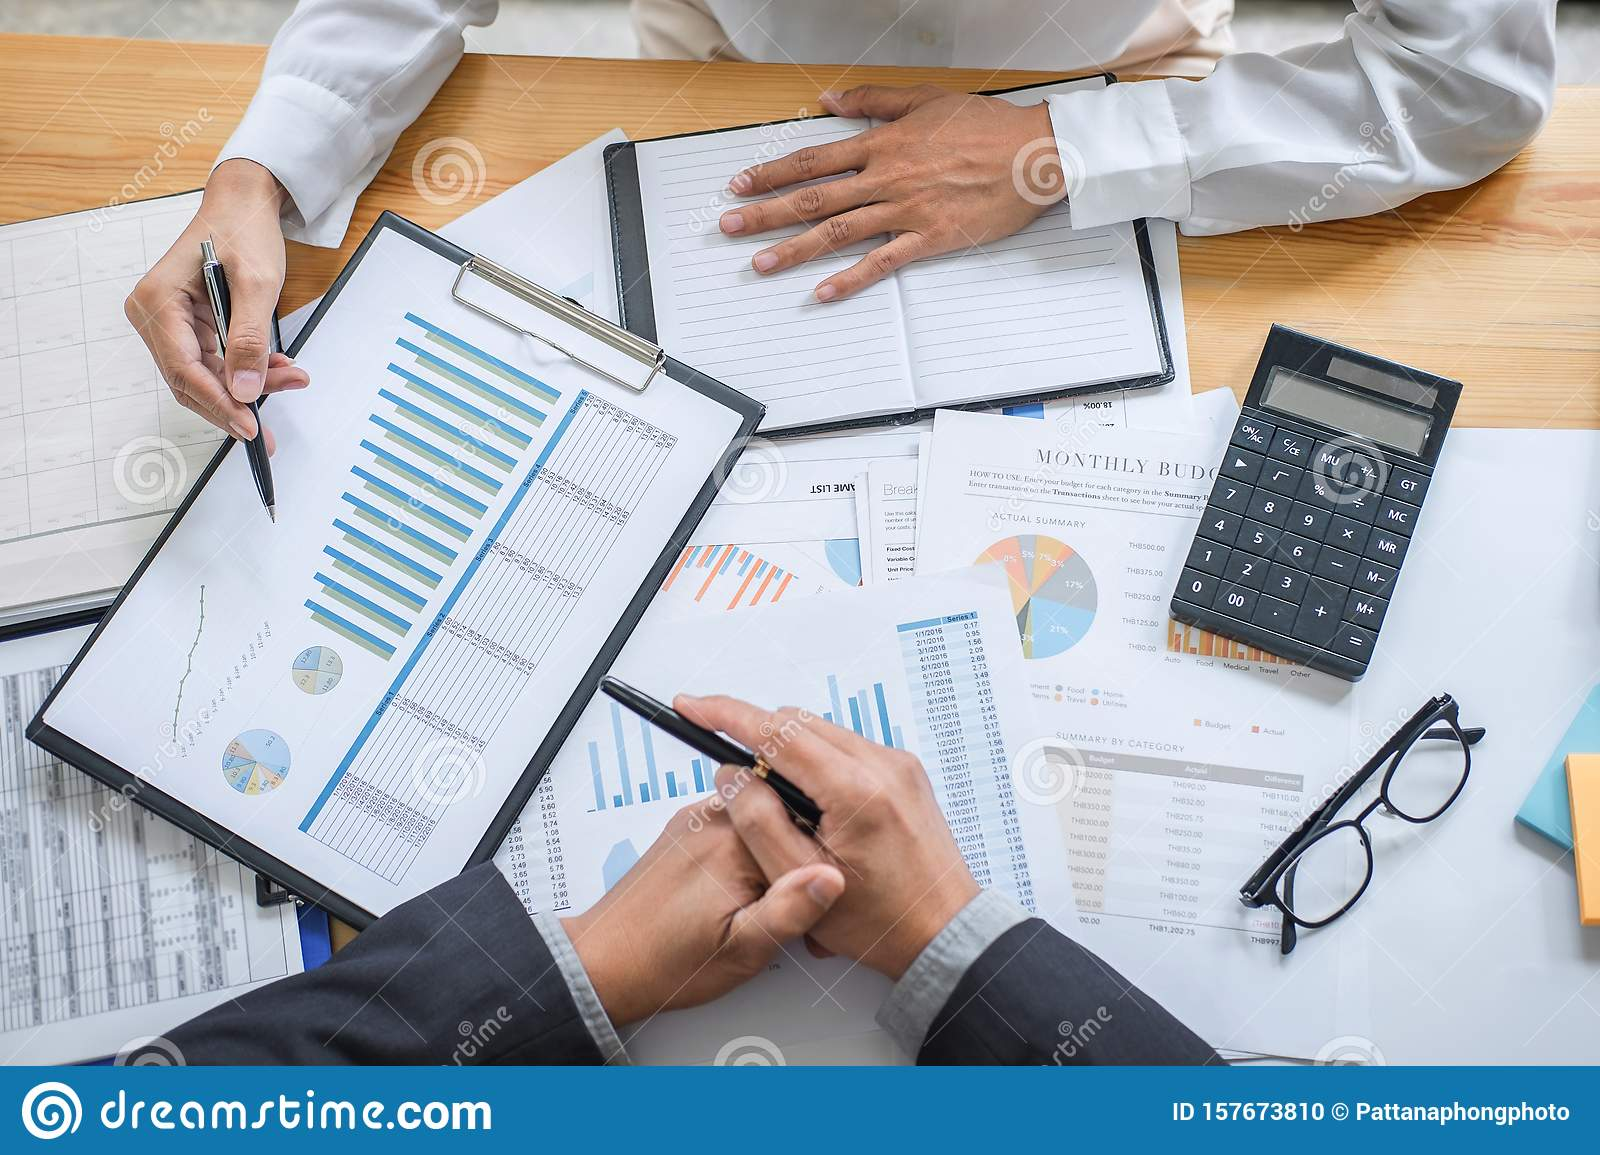 Business team consultant working with new startup growth project plan and discussion analyzing for financial strategy statistics